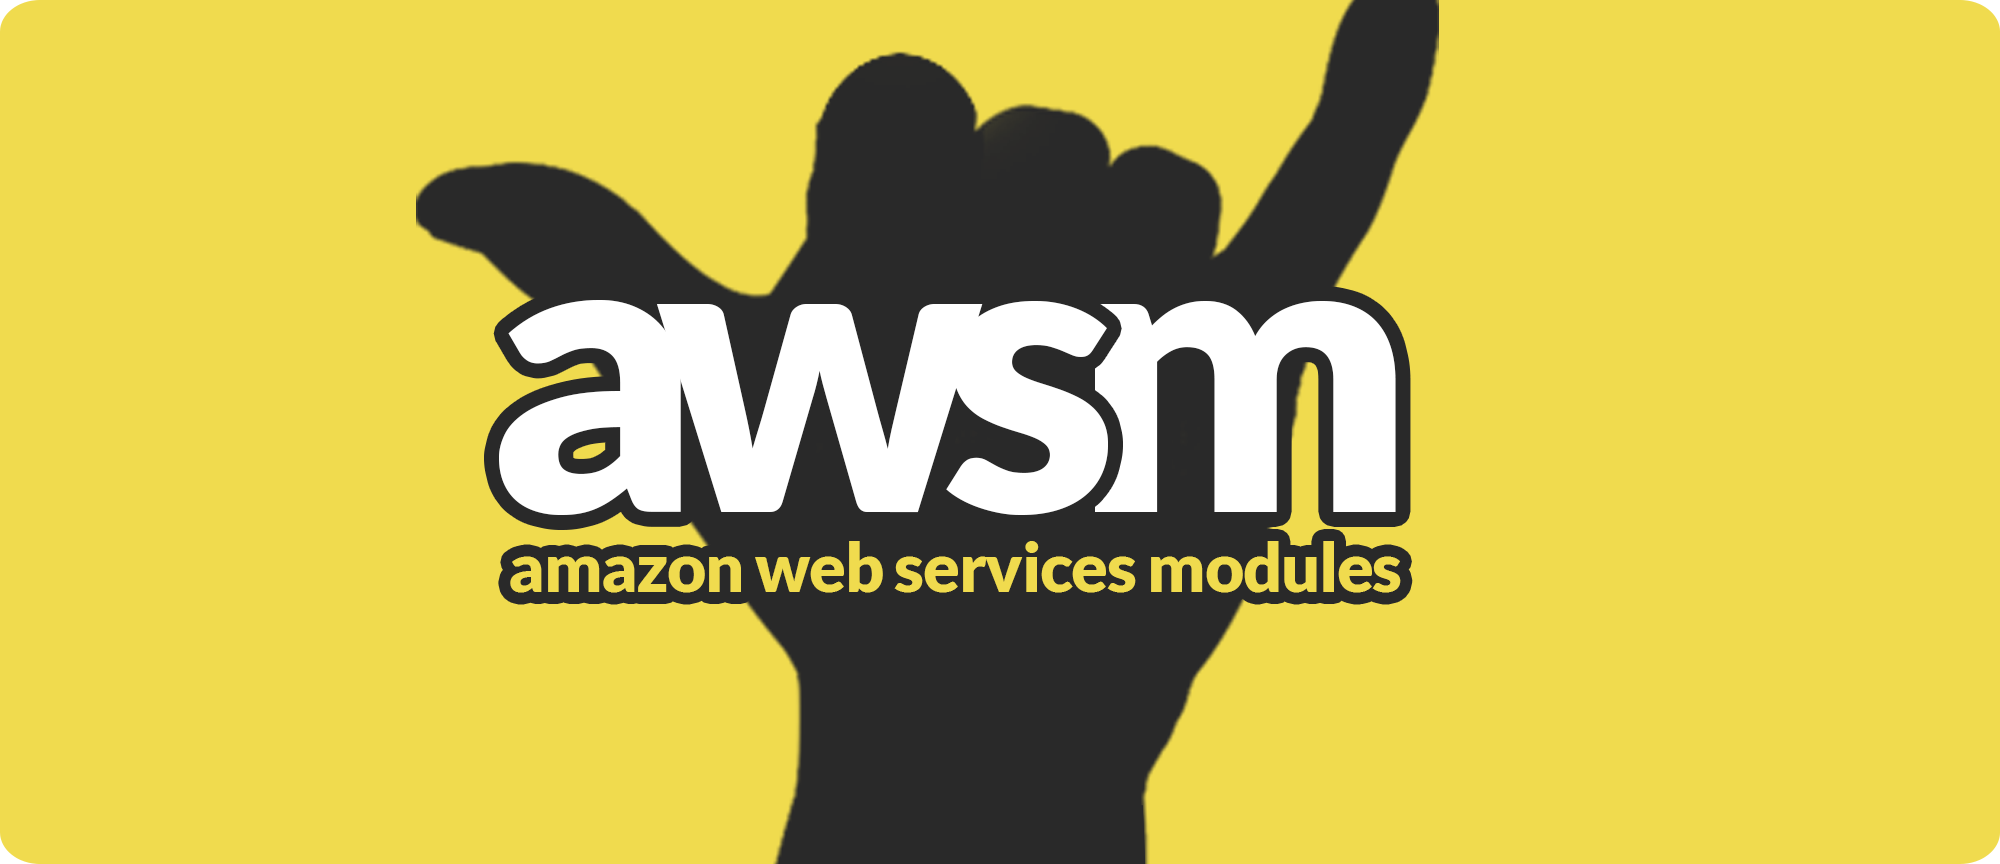 AWSM logo aws modules lambda api gateway JAWS